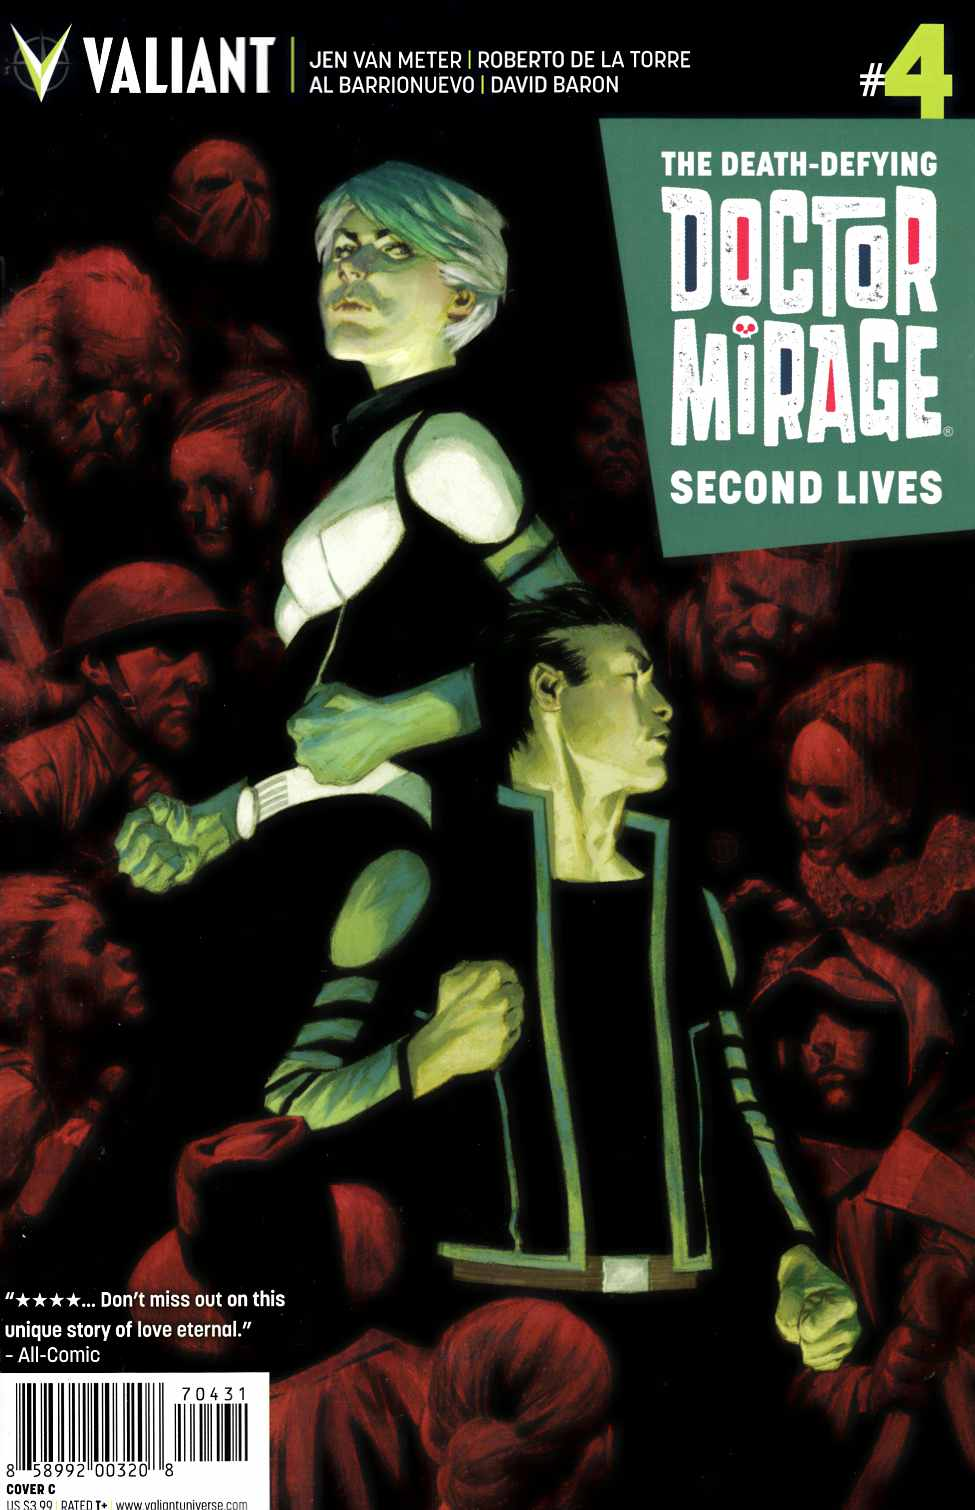 Dr Mirage Second Lives #4 Cover C [Valiant Comic]